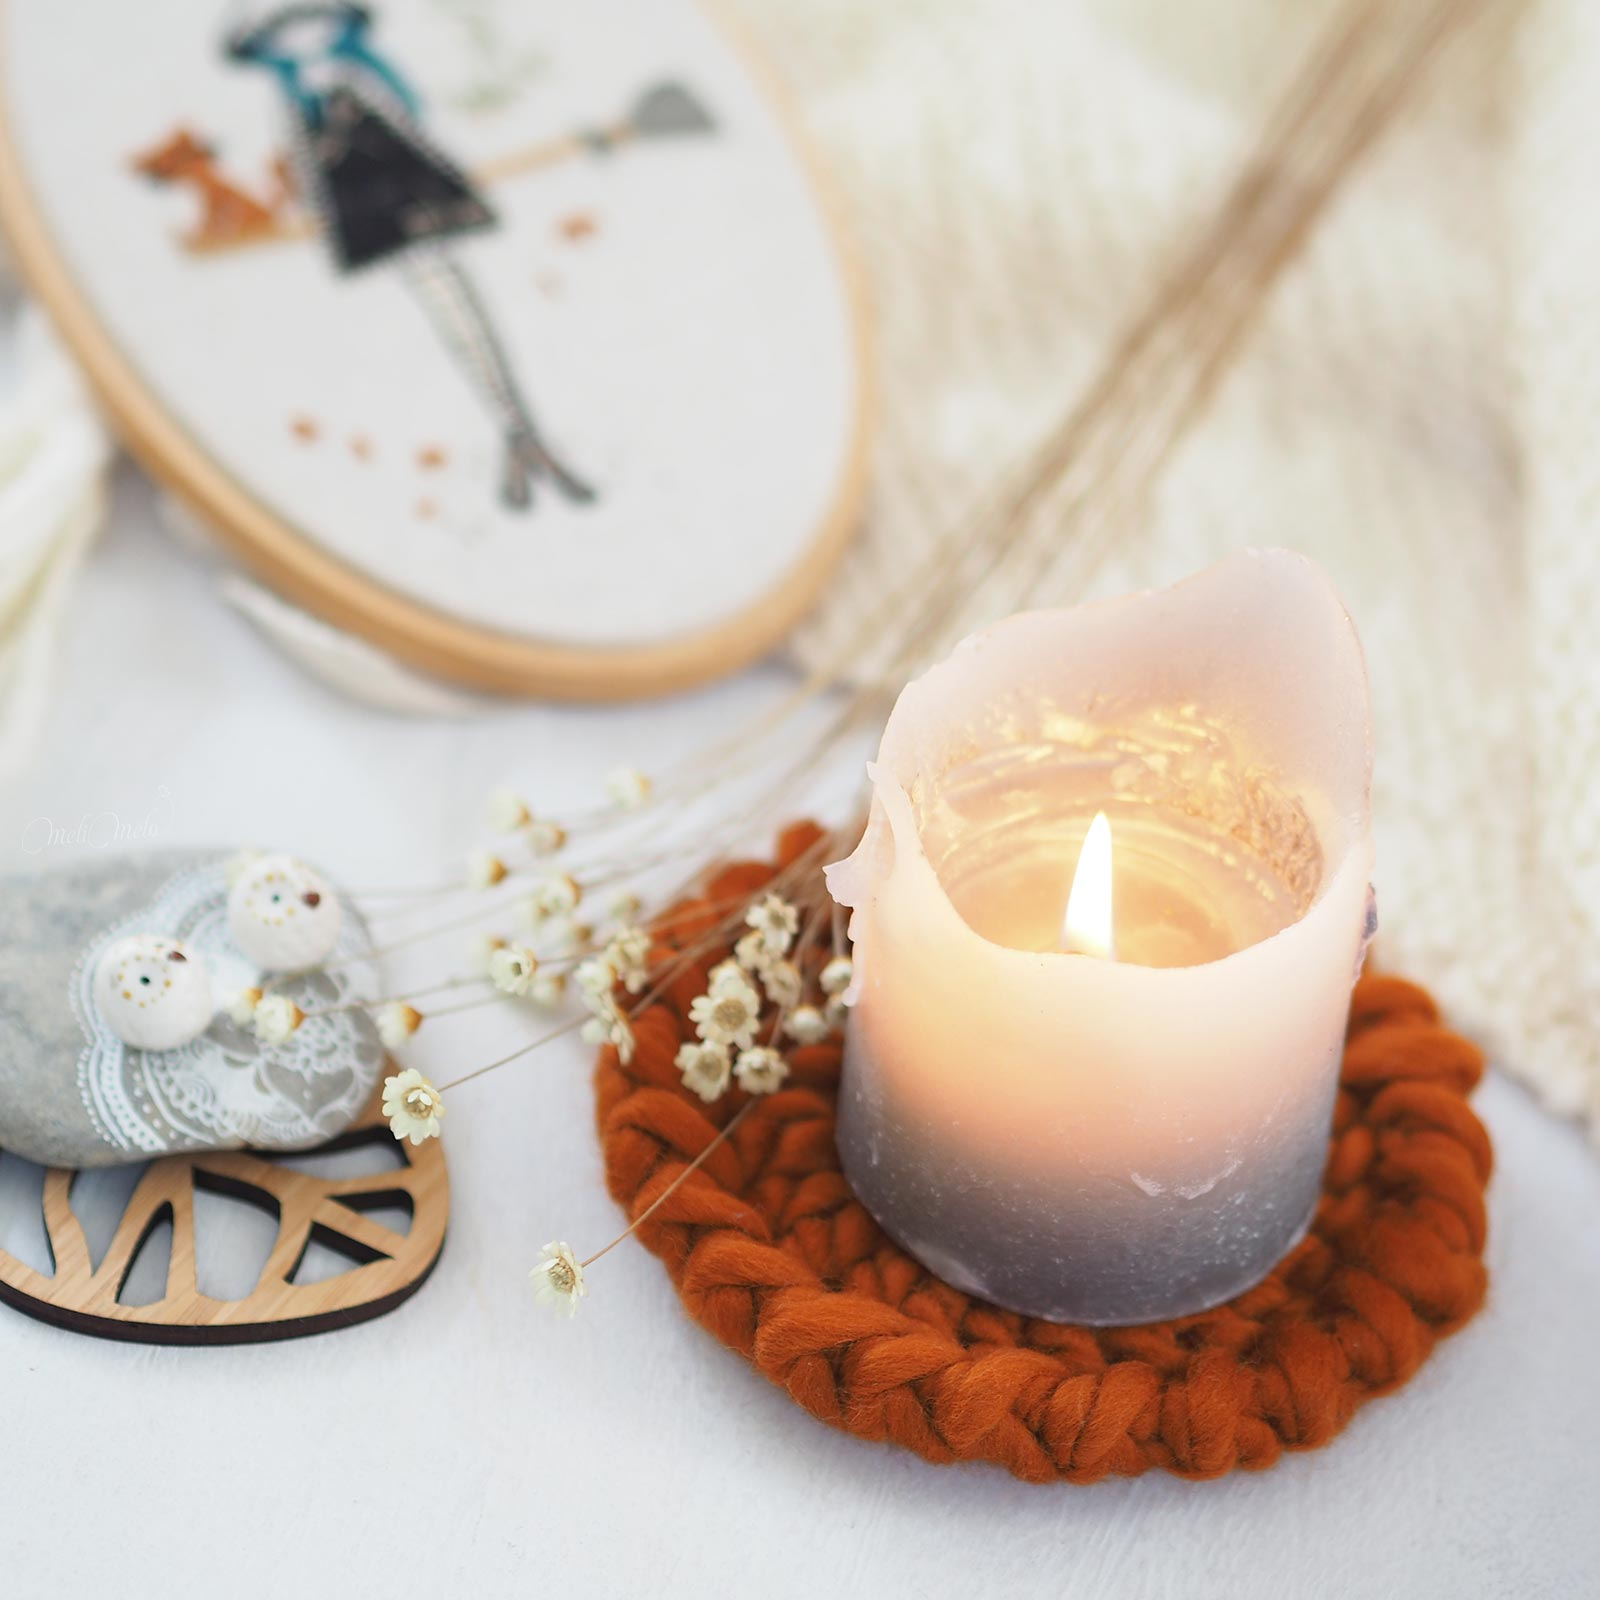 deco-cosy-laine-peruvienne-crazysexywool-woolandthegang-bougie-laboutiquedemelimelo